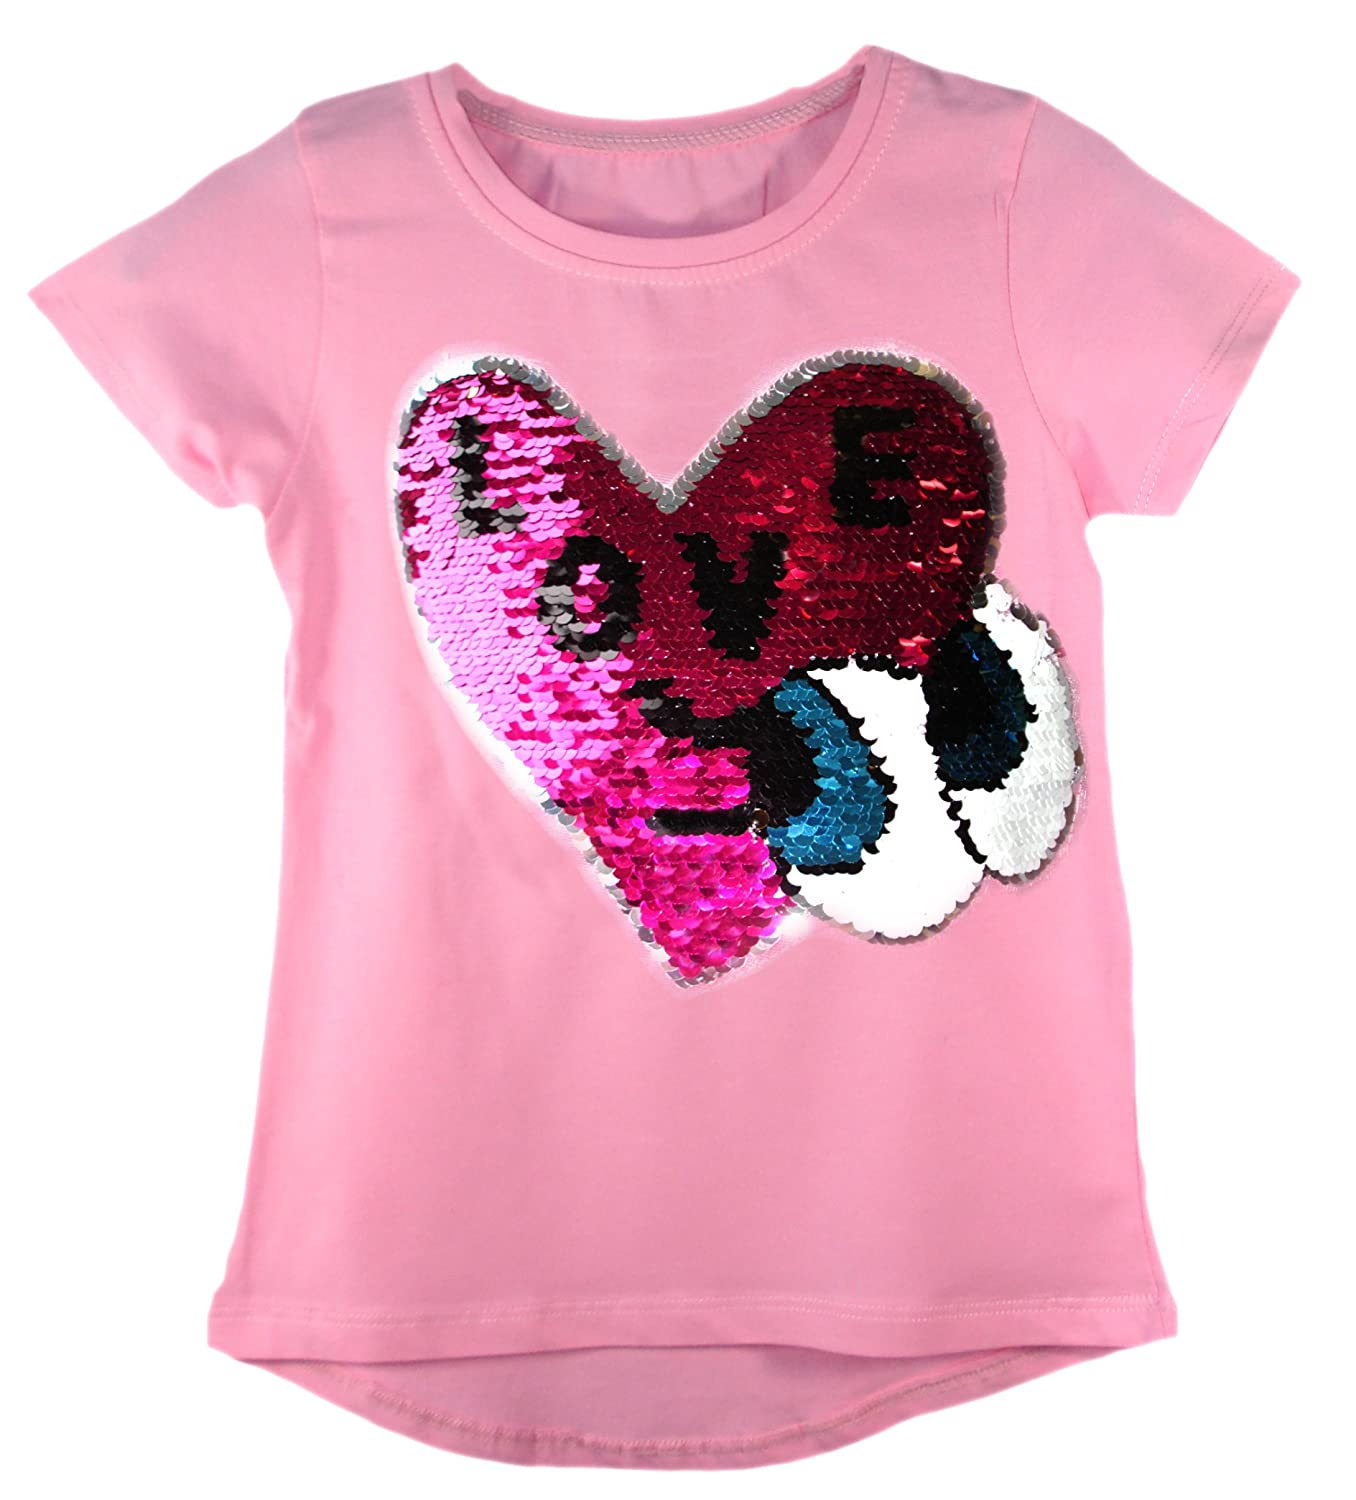 Amazon.com  Kids Girls Changing Sequin Sizes Heart Butterfly Tops Brush  Love Star 3-14 Years  Clothing 5d2275f58ee0